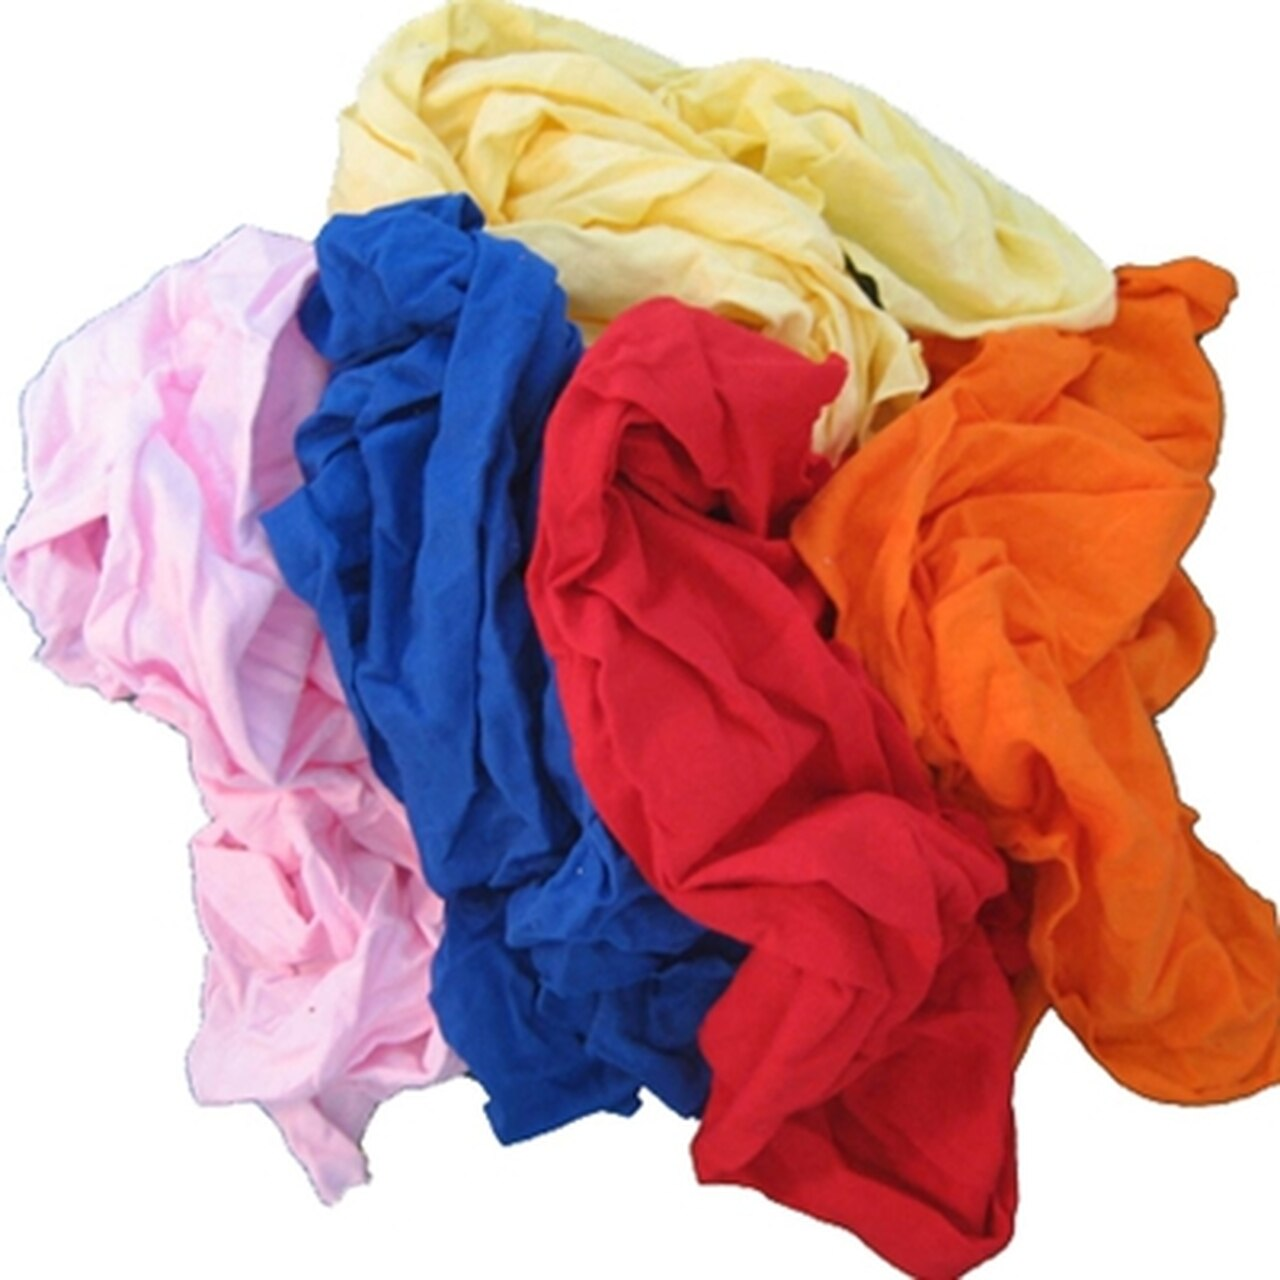 Coloured Soft Knit T-Shirt Material Rags - 15 kg